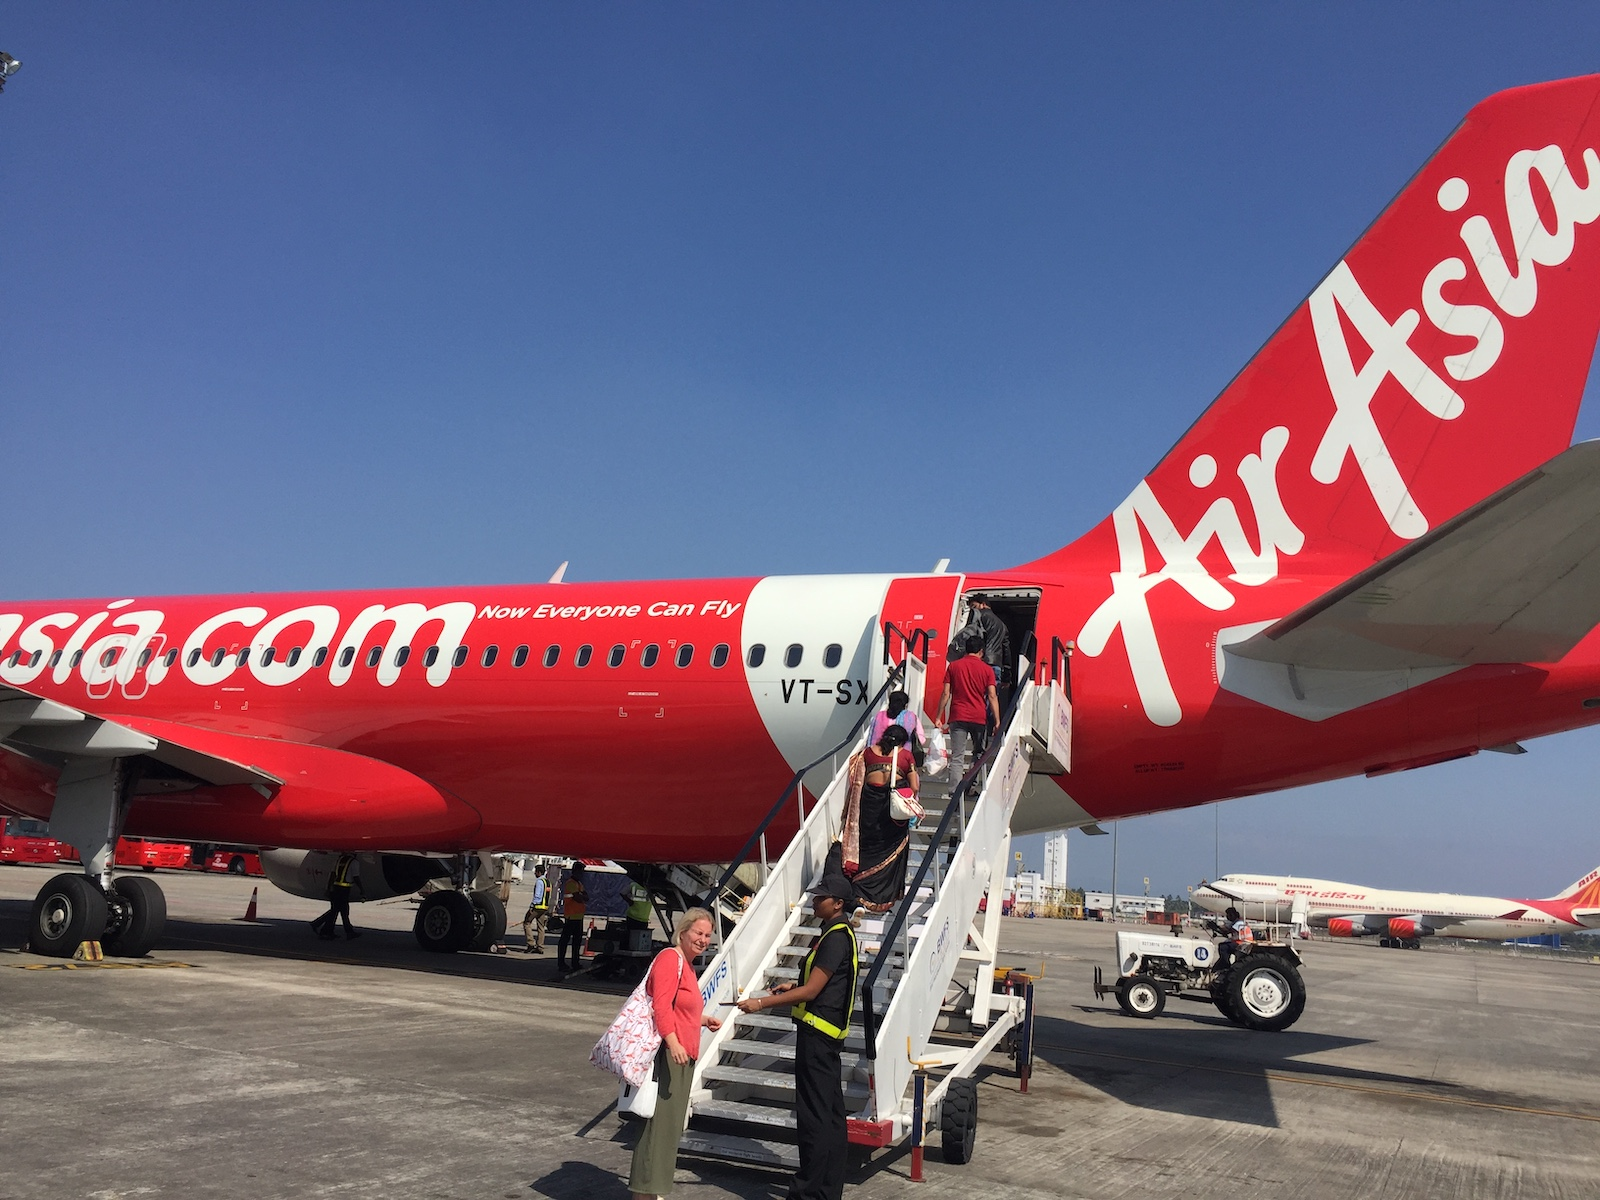 Getting on the Air Asia flight from Kochi to Goa, India